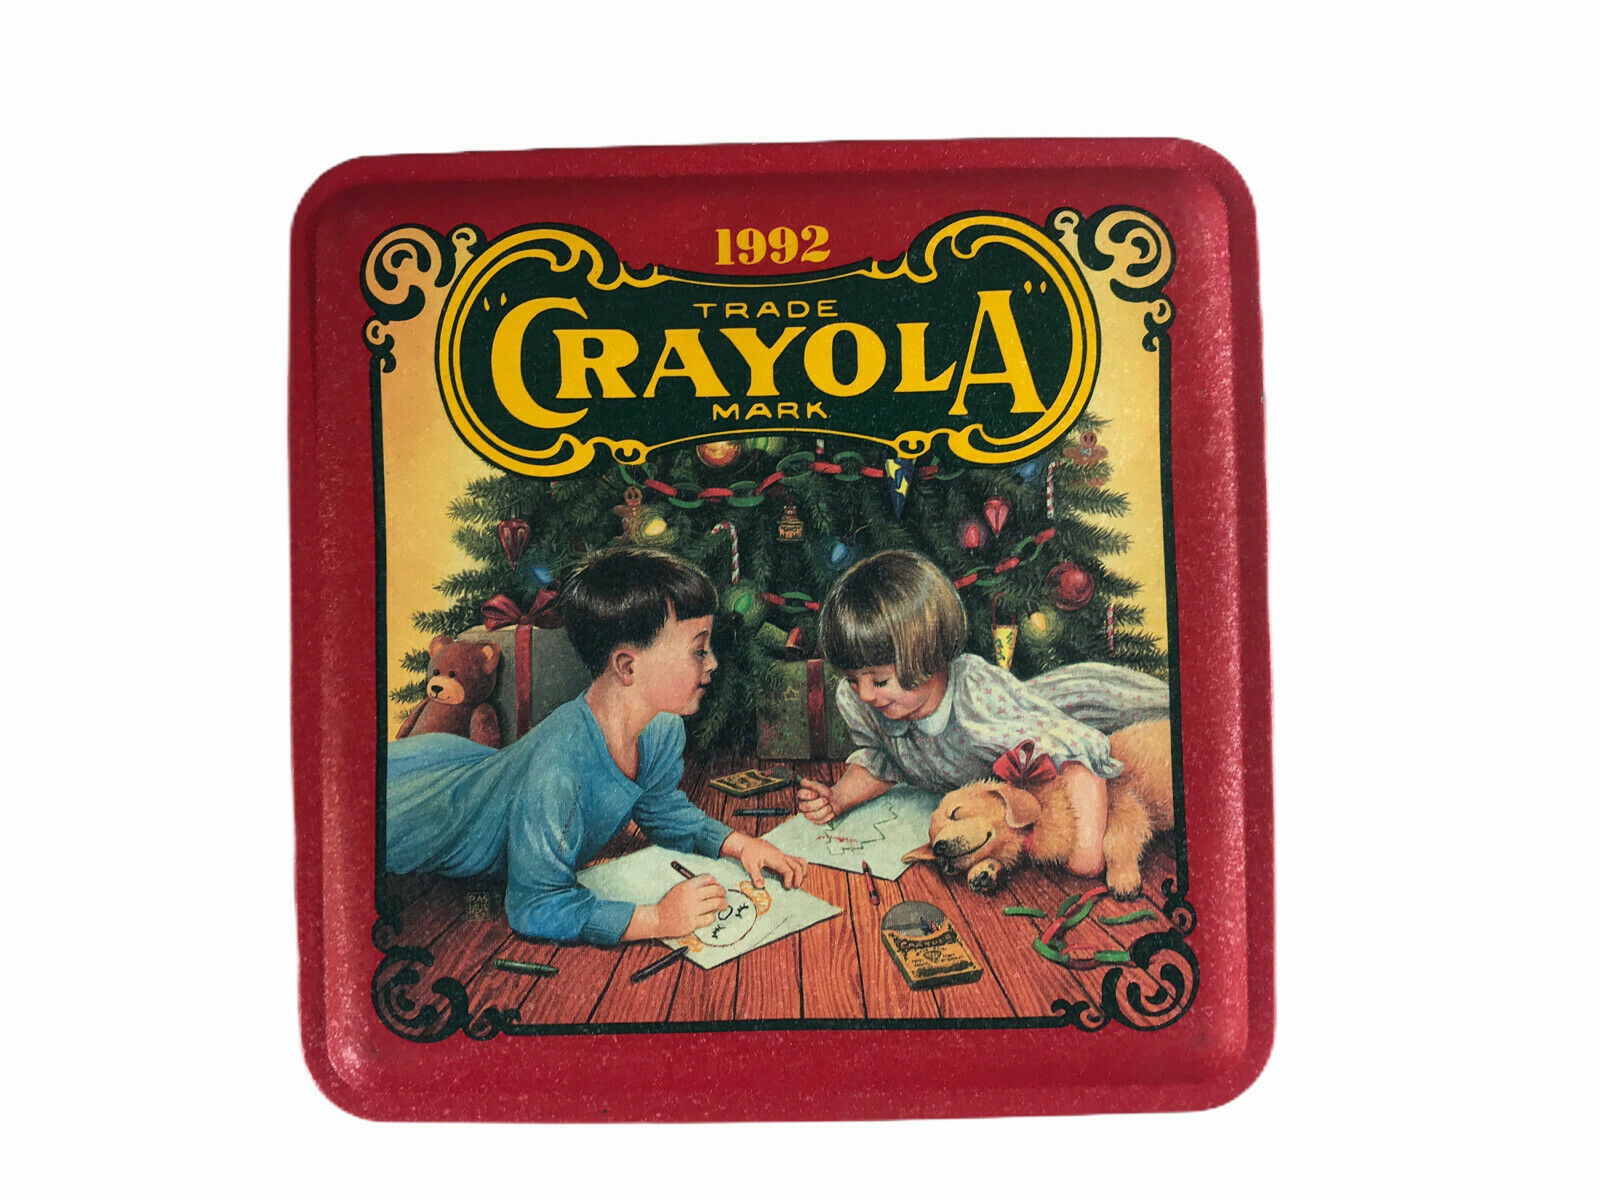 Vintage 1992 Crayola Christmas Tin Only. Featuring Children Playing and Toys - $8.90